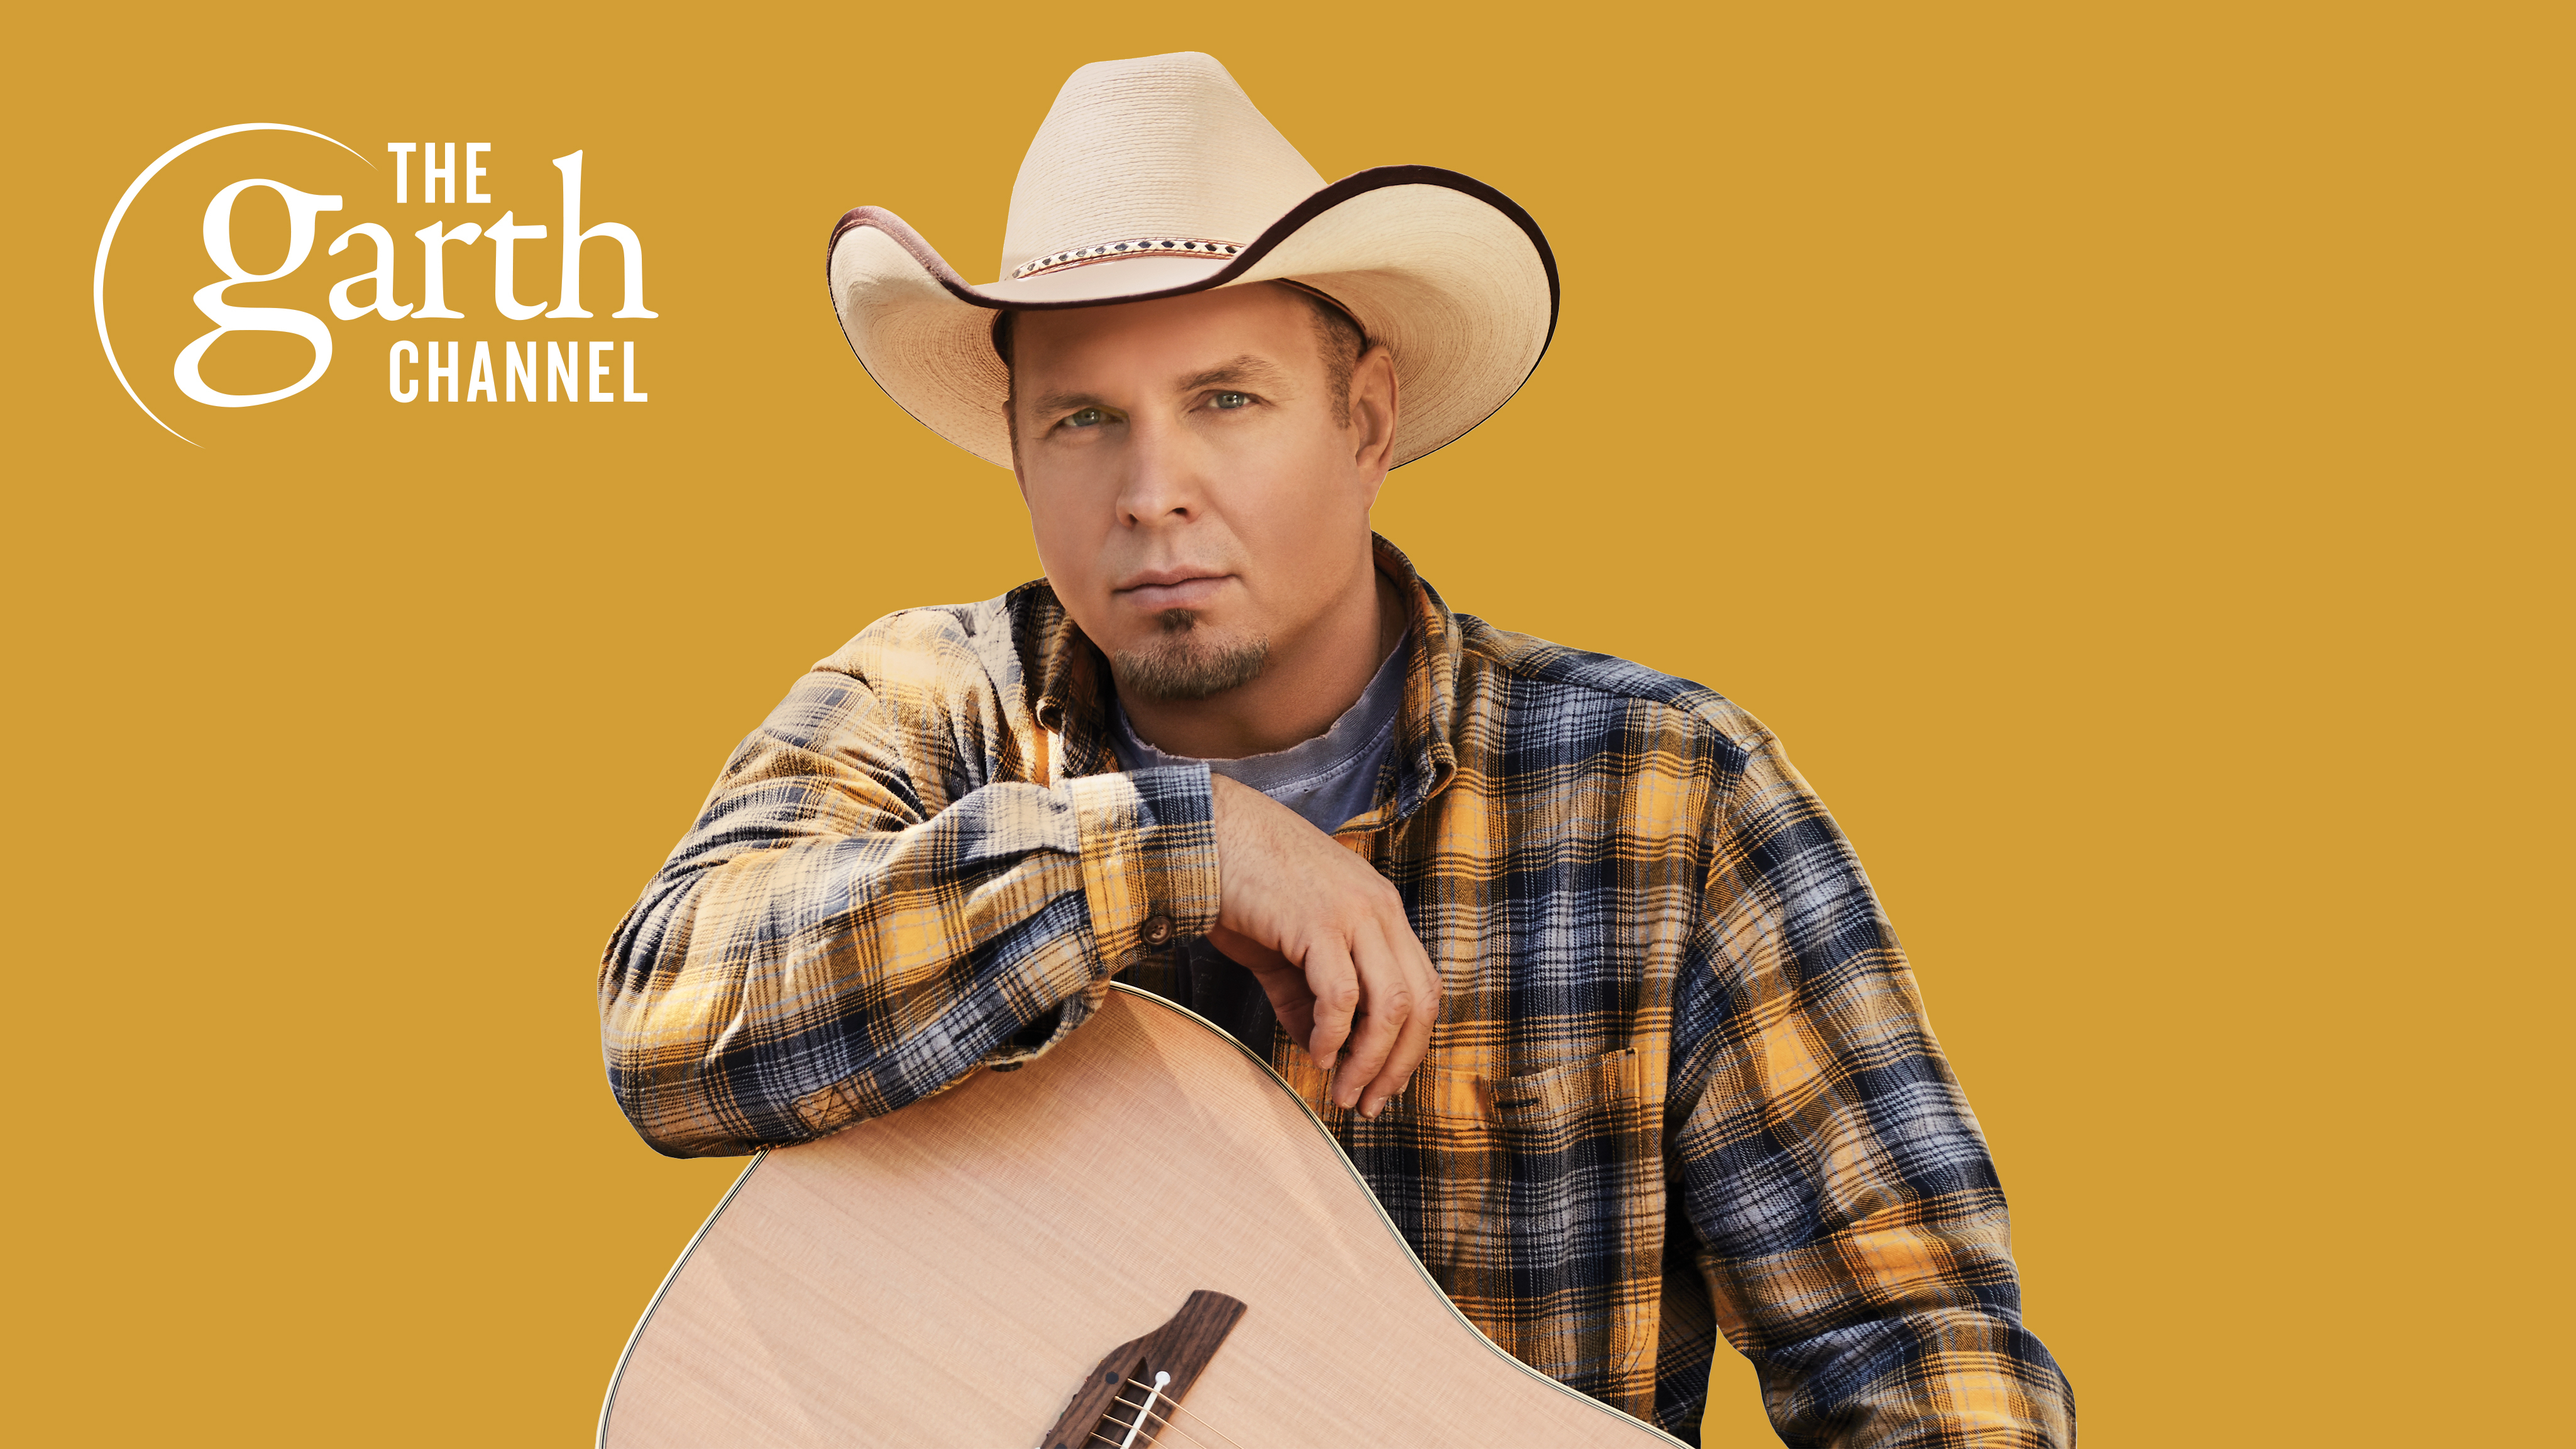 Vote for your favorite Garth Brooks songs & hear them throughout Fourth of July weekend